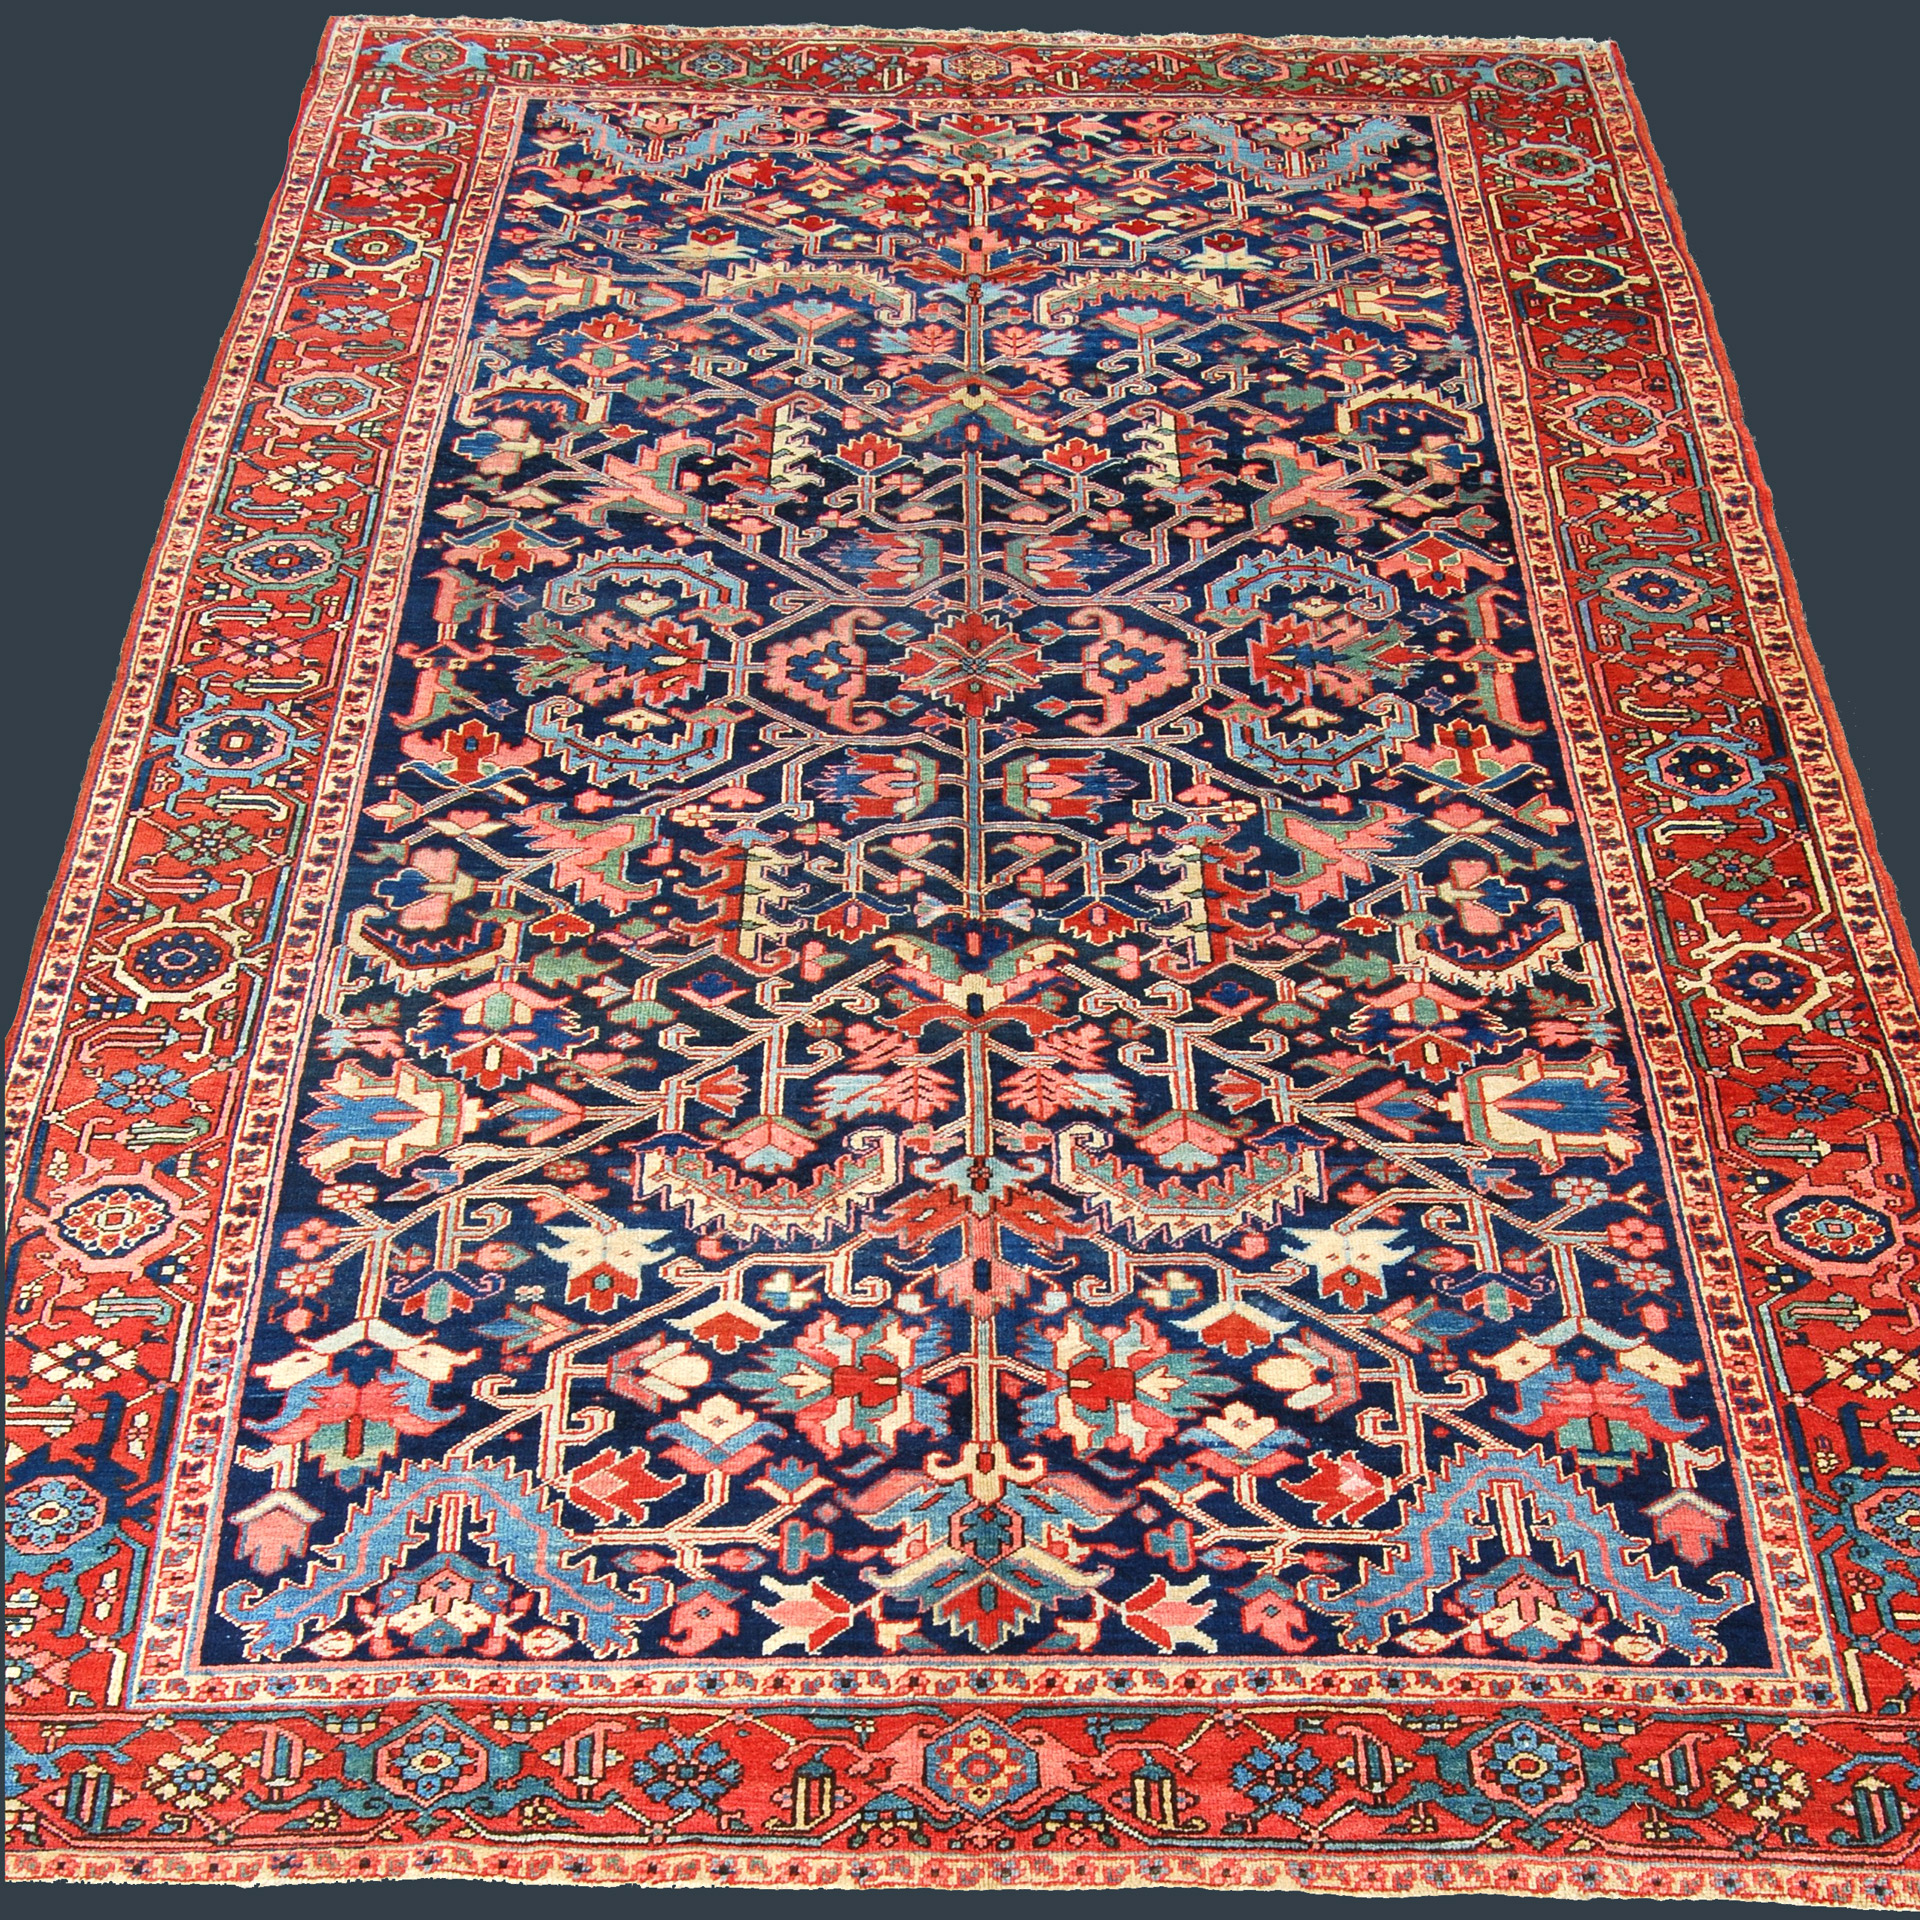 Antique Persian Heriz carpet with navy field and all-over design